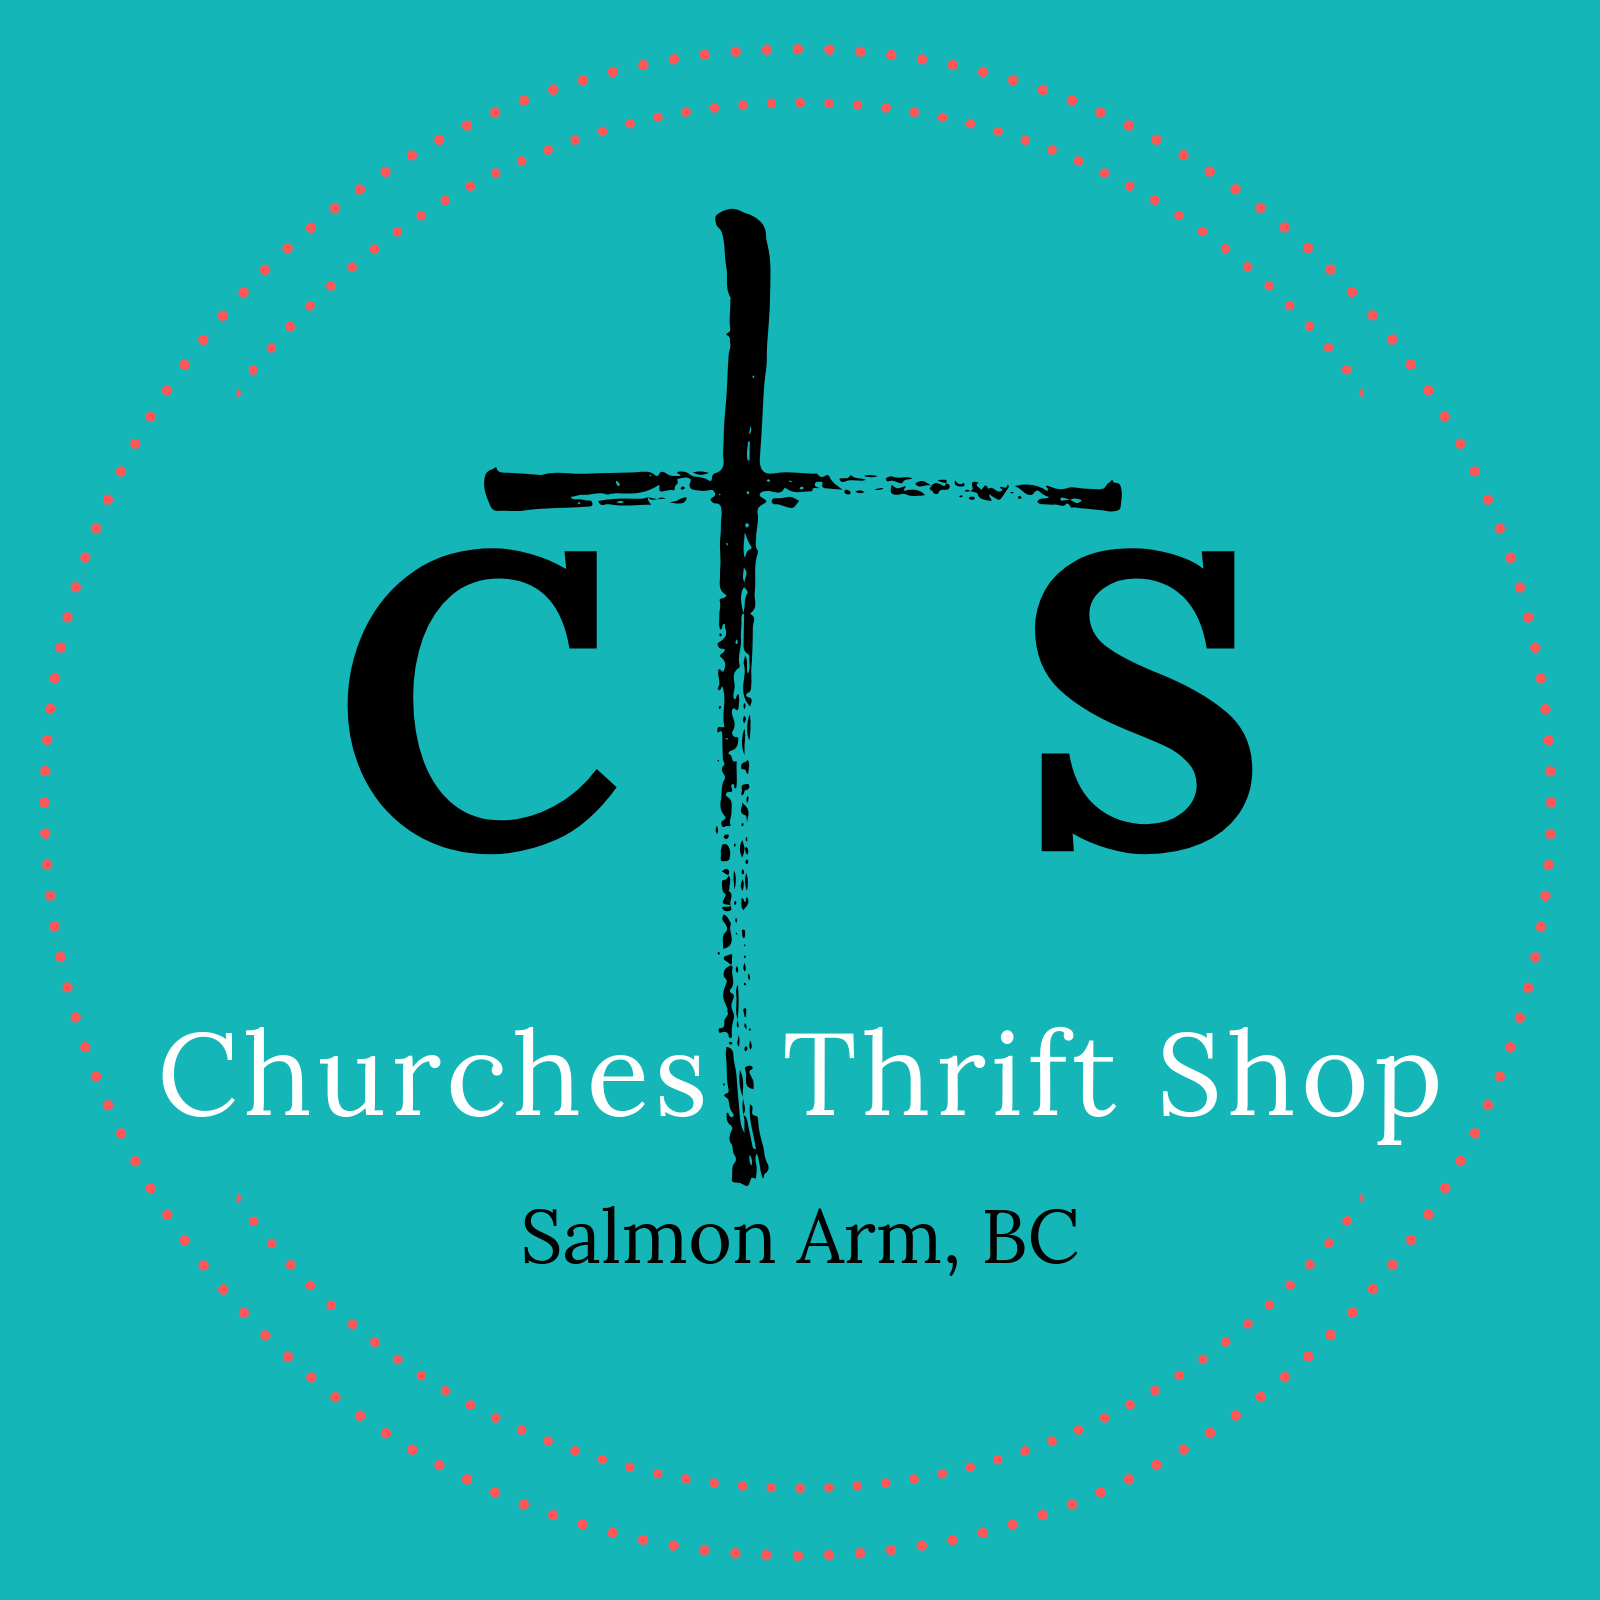 Churches Thrift Shop